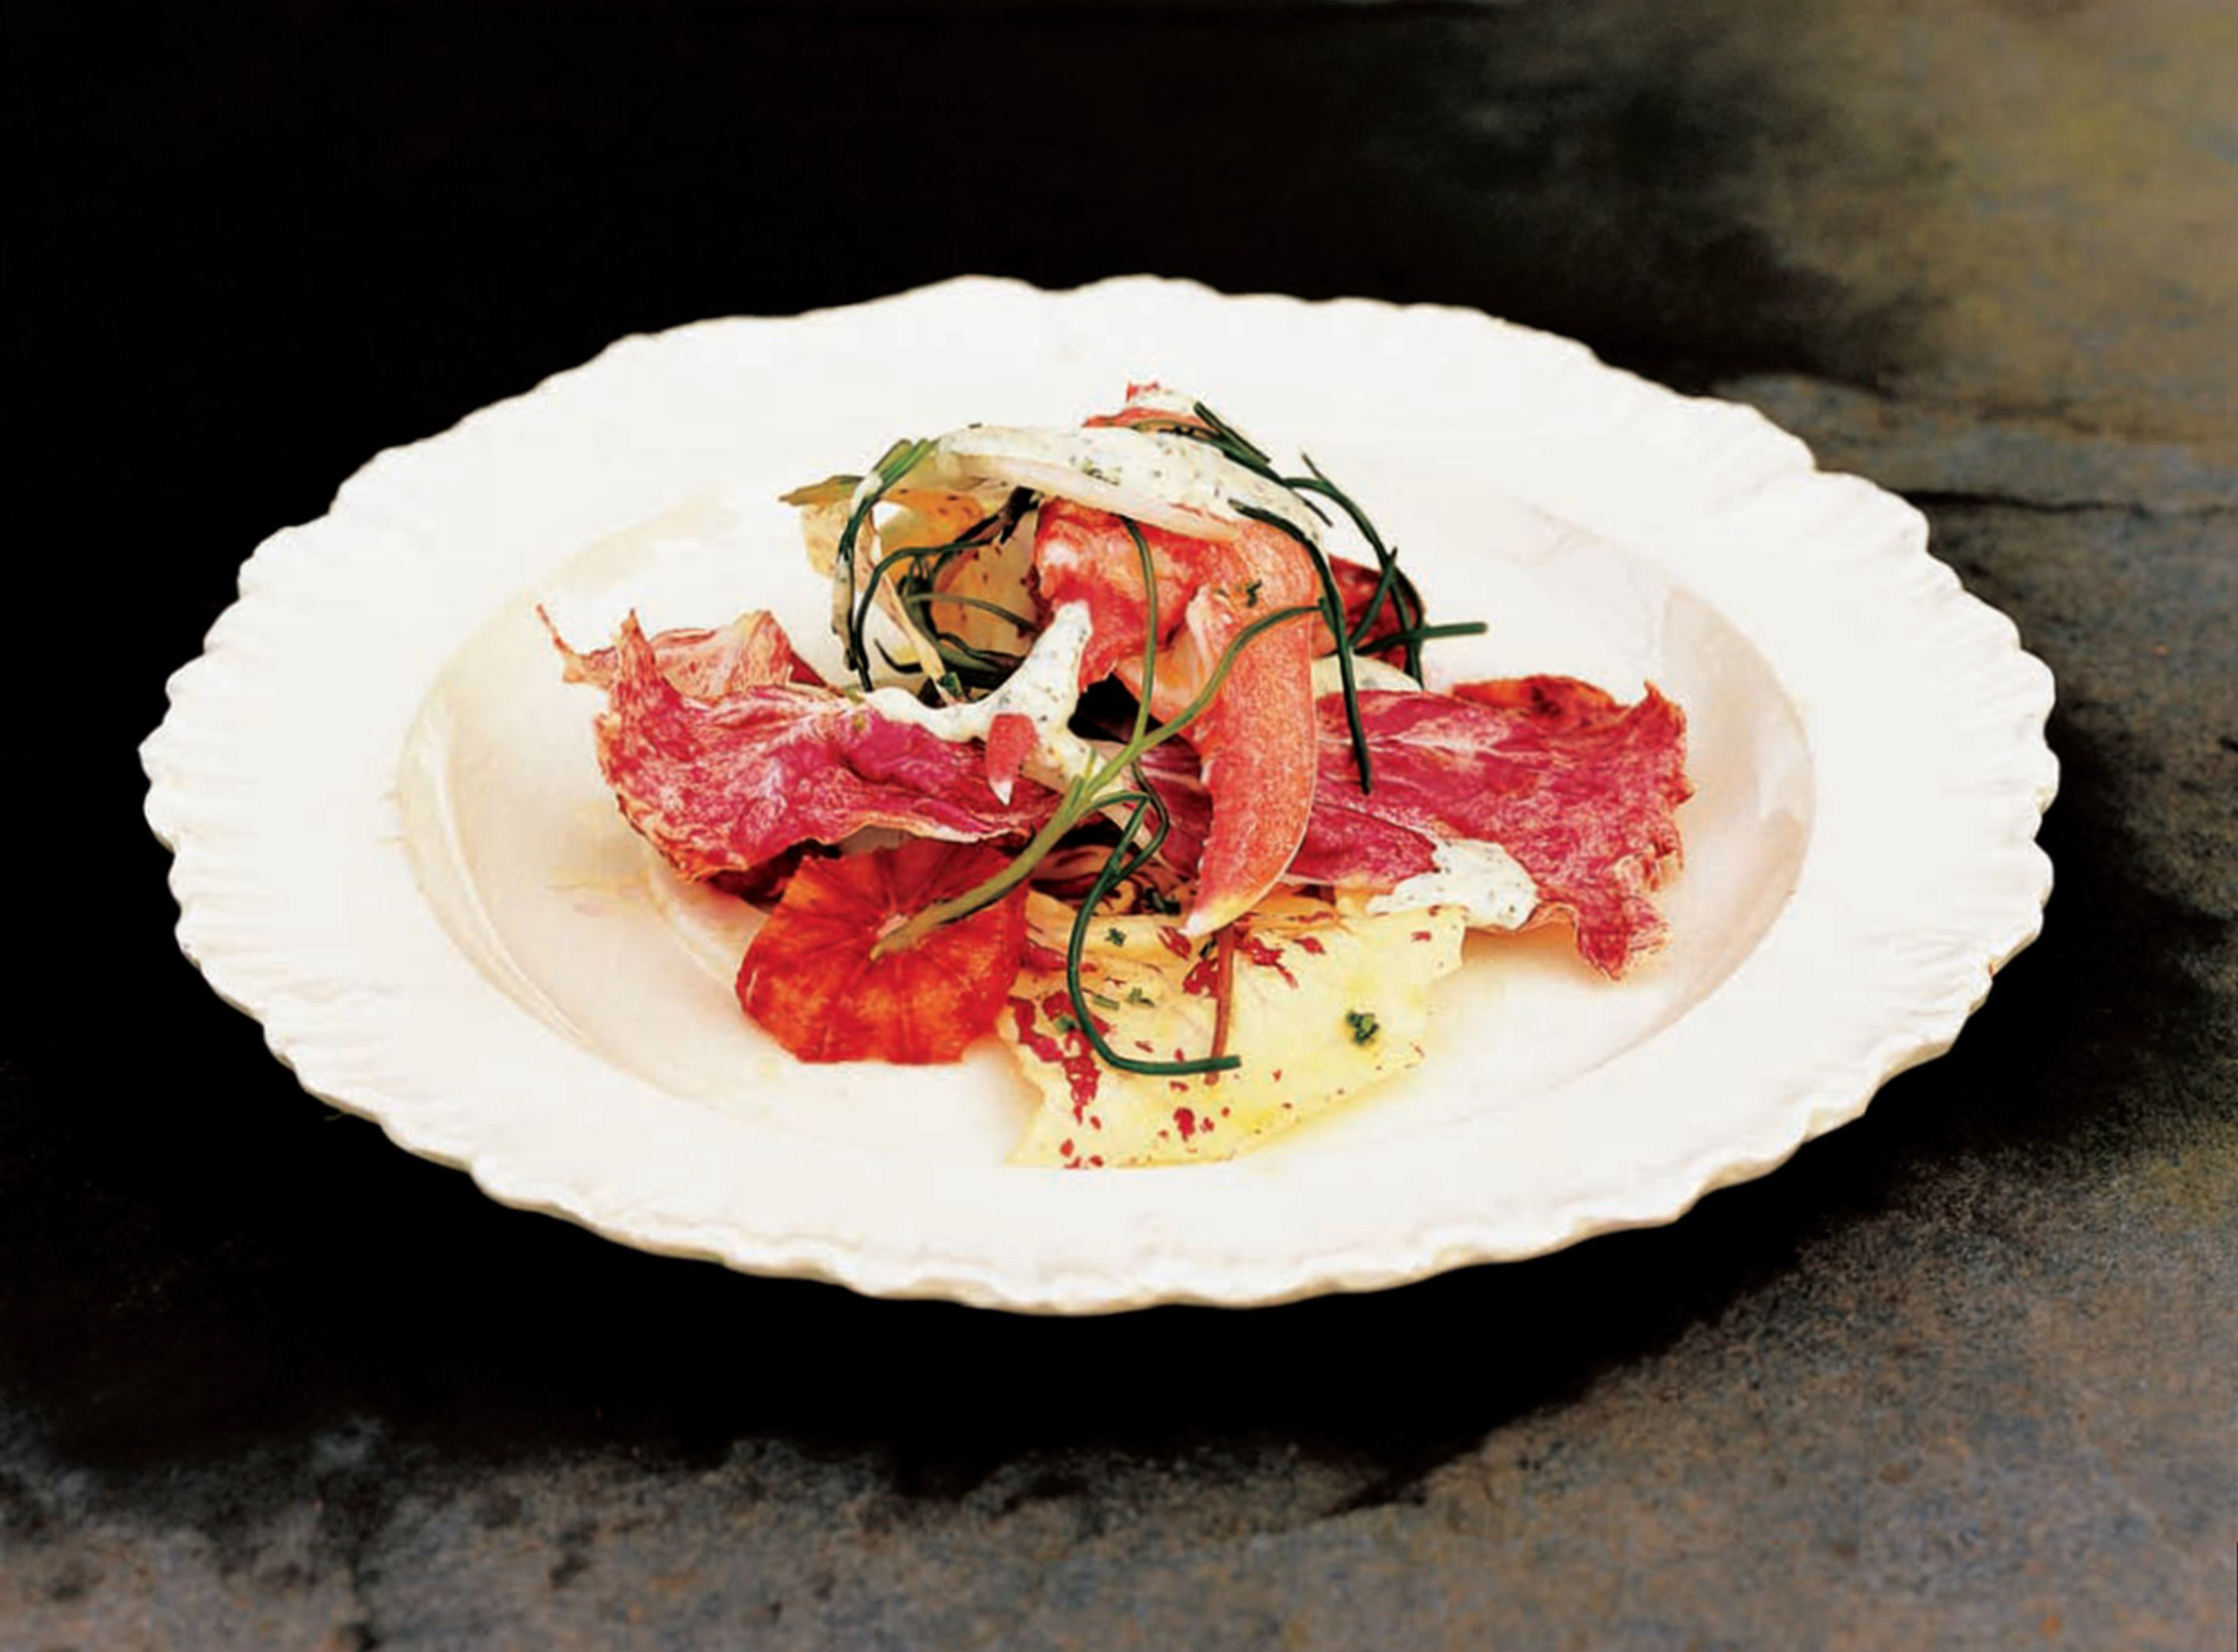 Lobster salad with fennel and blood oranges